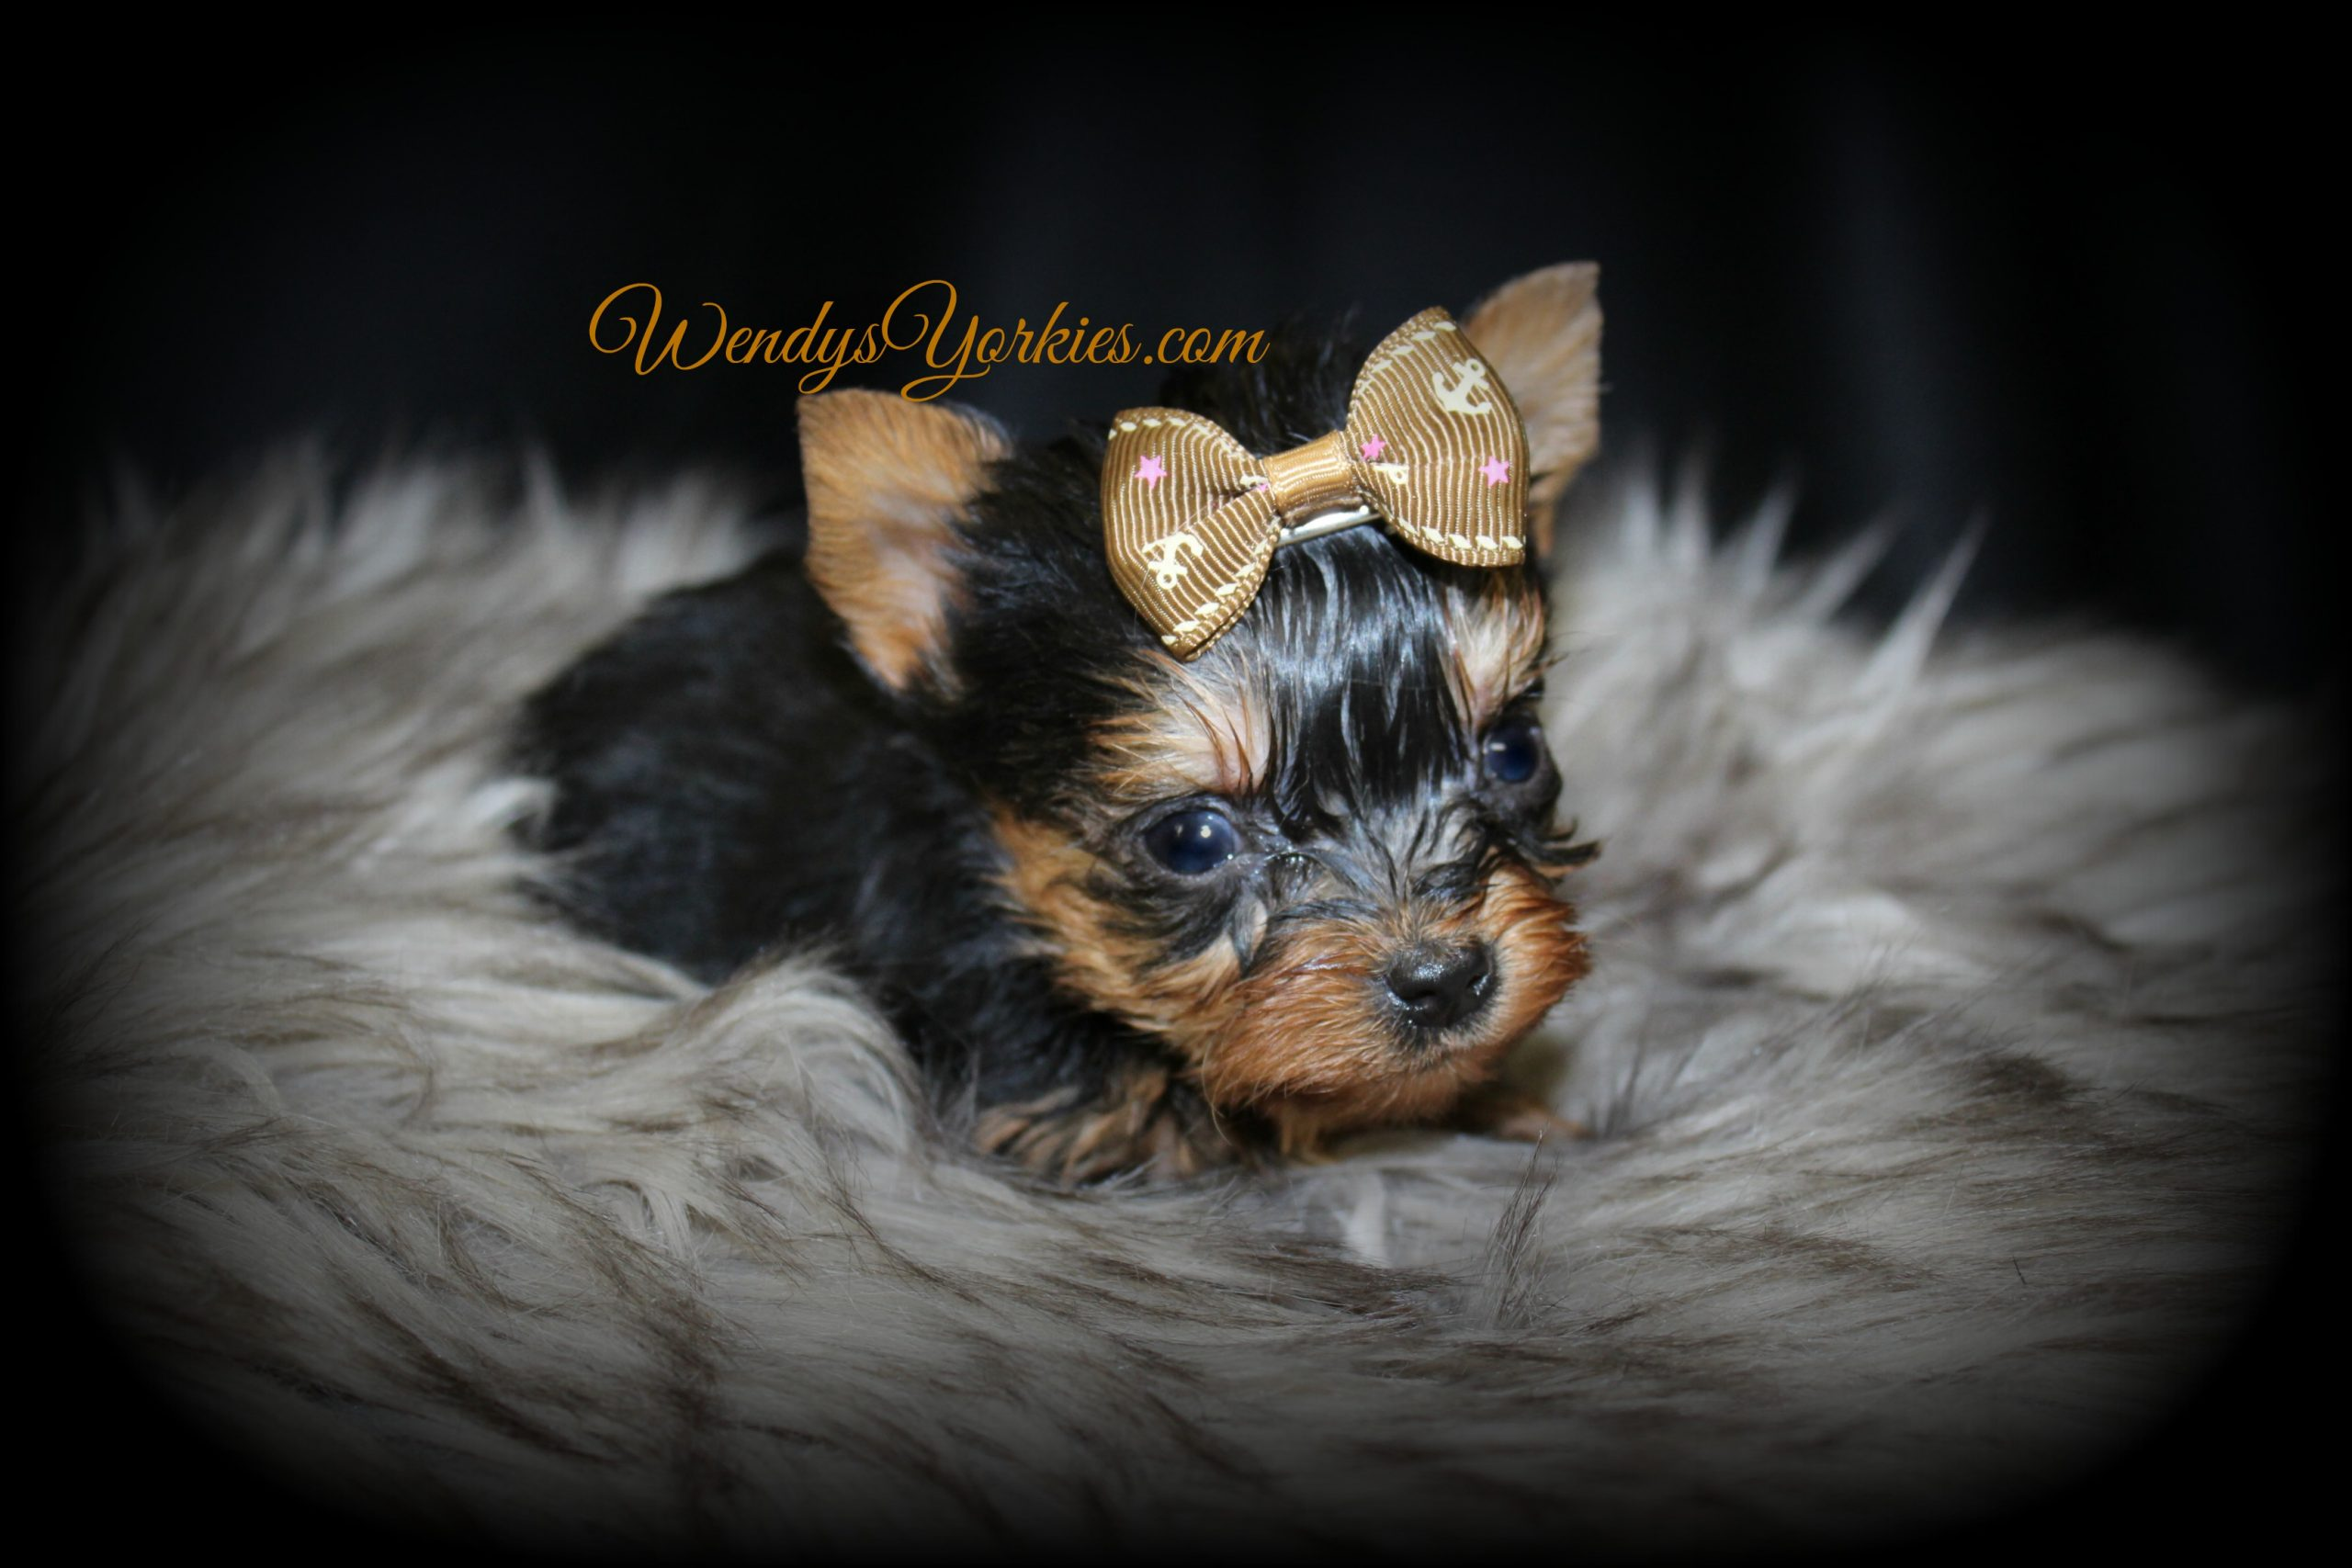 Tiny Teacup Male yorkie puppy for sale, Grace m3, WendysYorkies.com